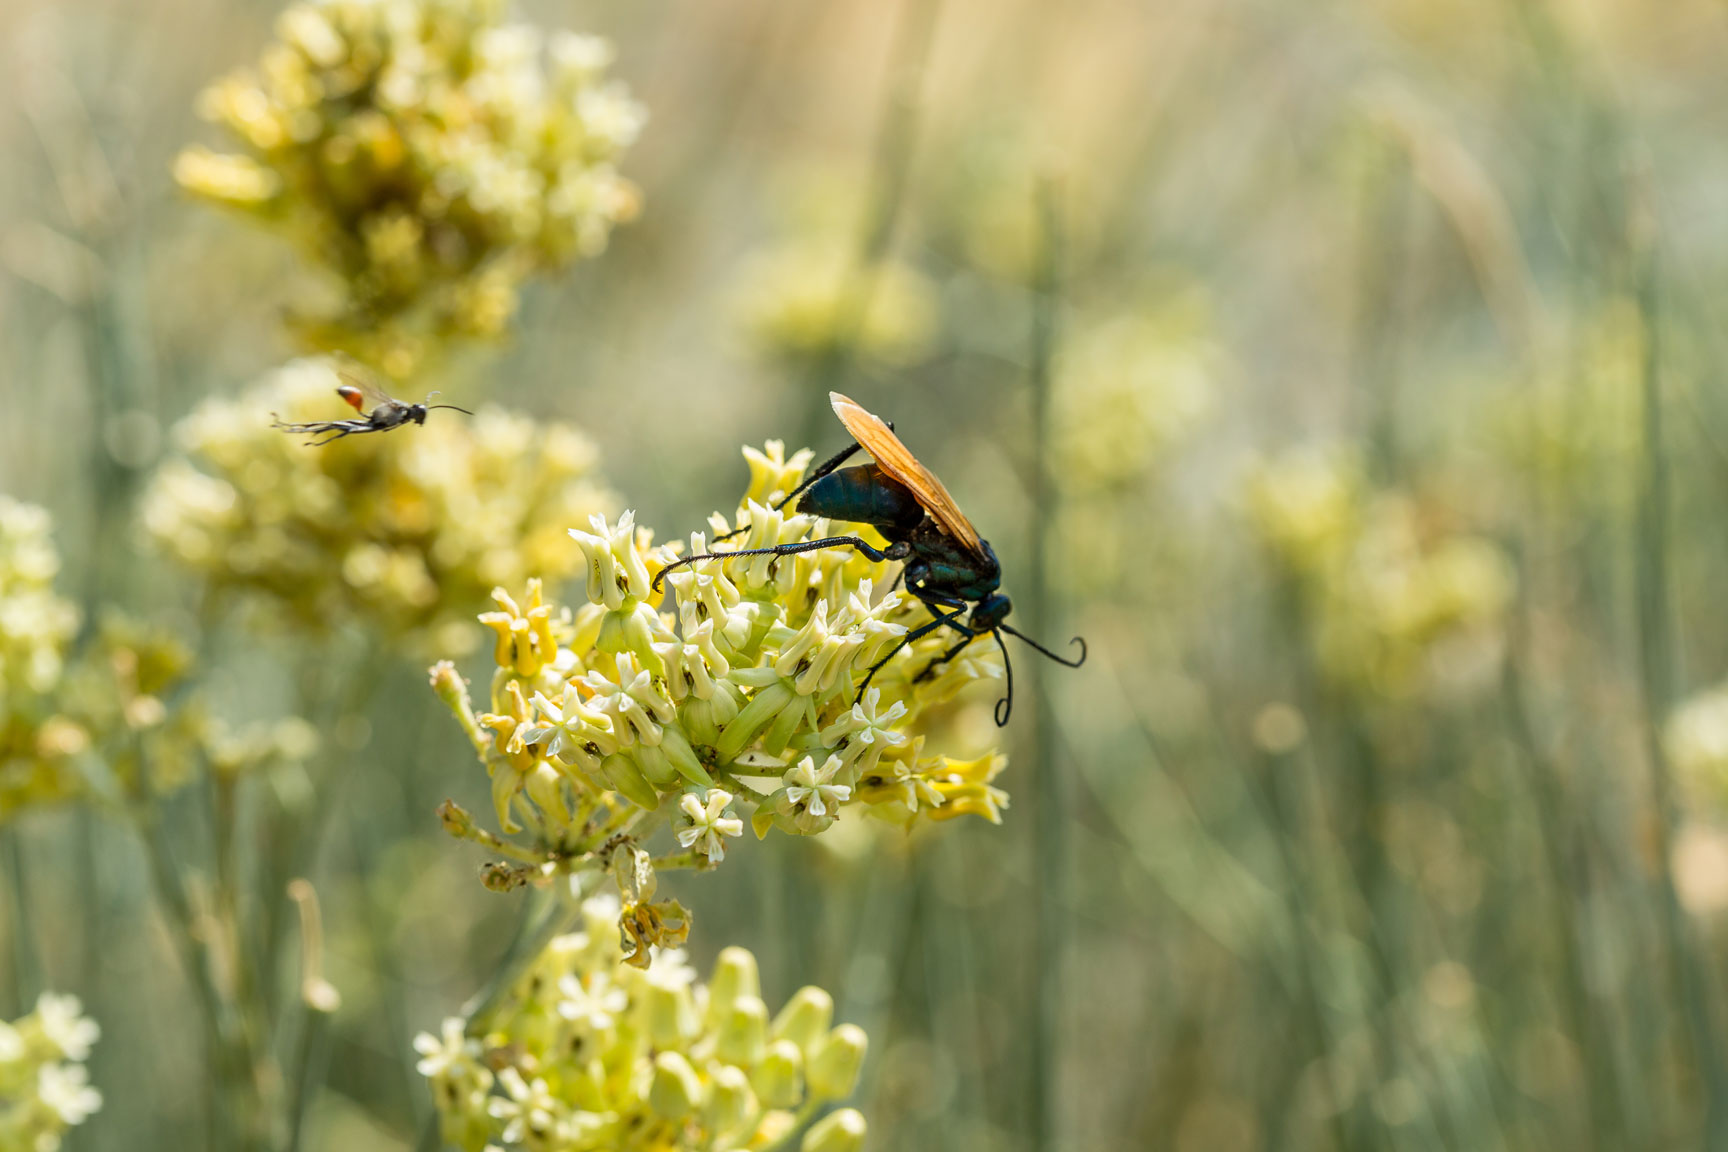 A Tarantula Hawk Wasp perched on Desert Milkweed flowers.